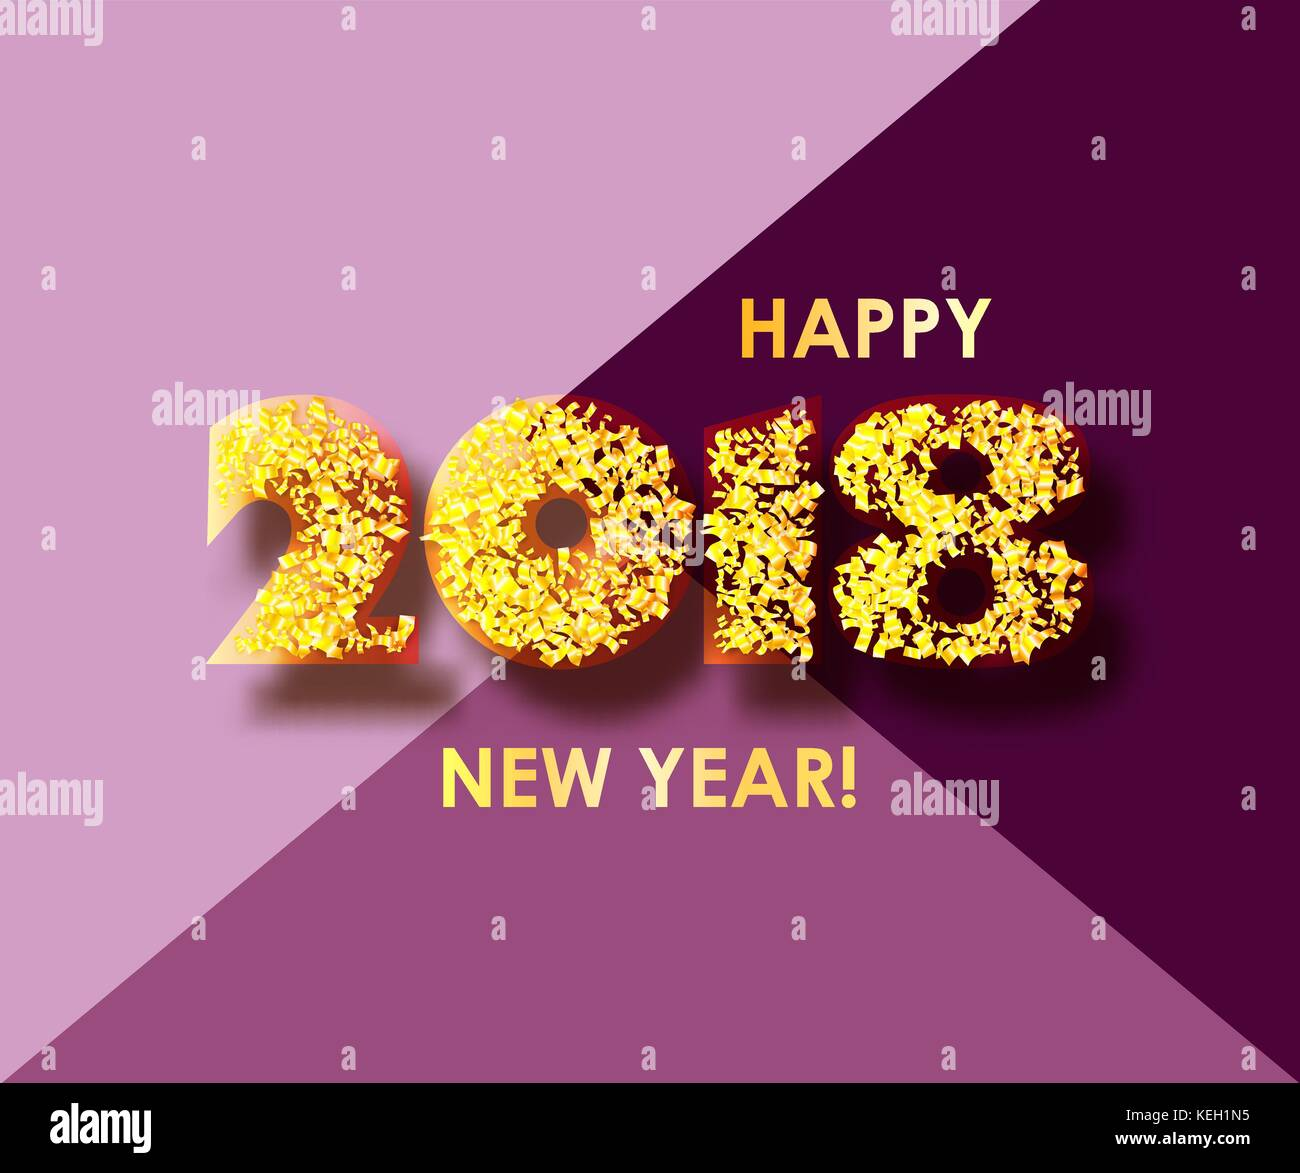 new year 2018 celebration background with confetti